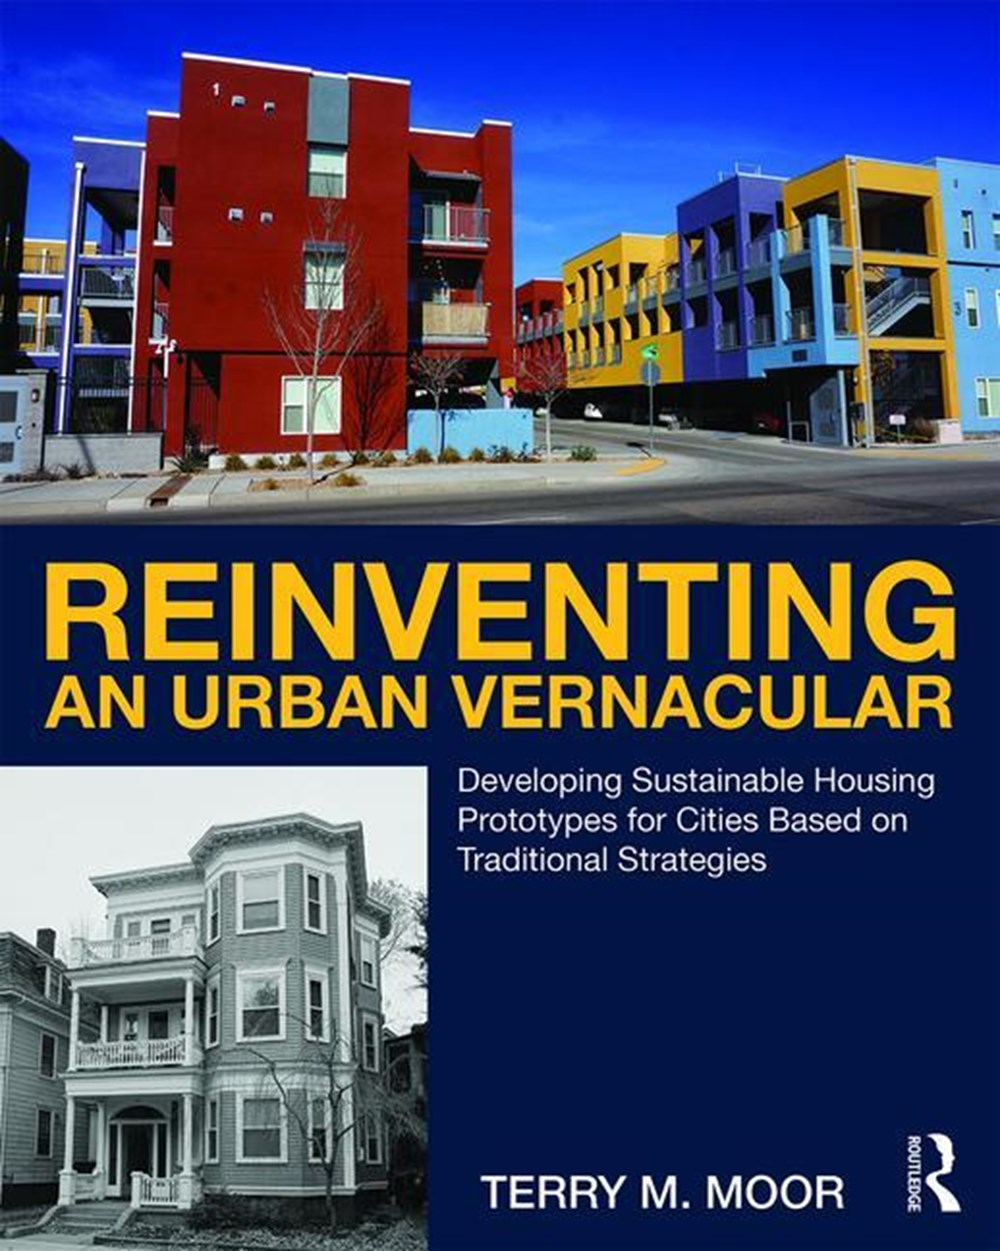 Reinventing an Urban Vernacular Developing Sustainable Housing Prototypes for Cities Based on Tradit